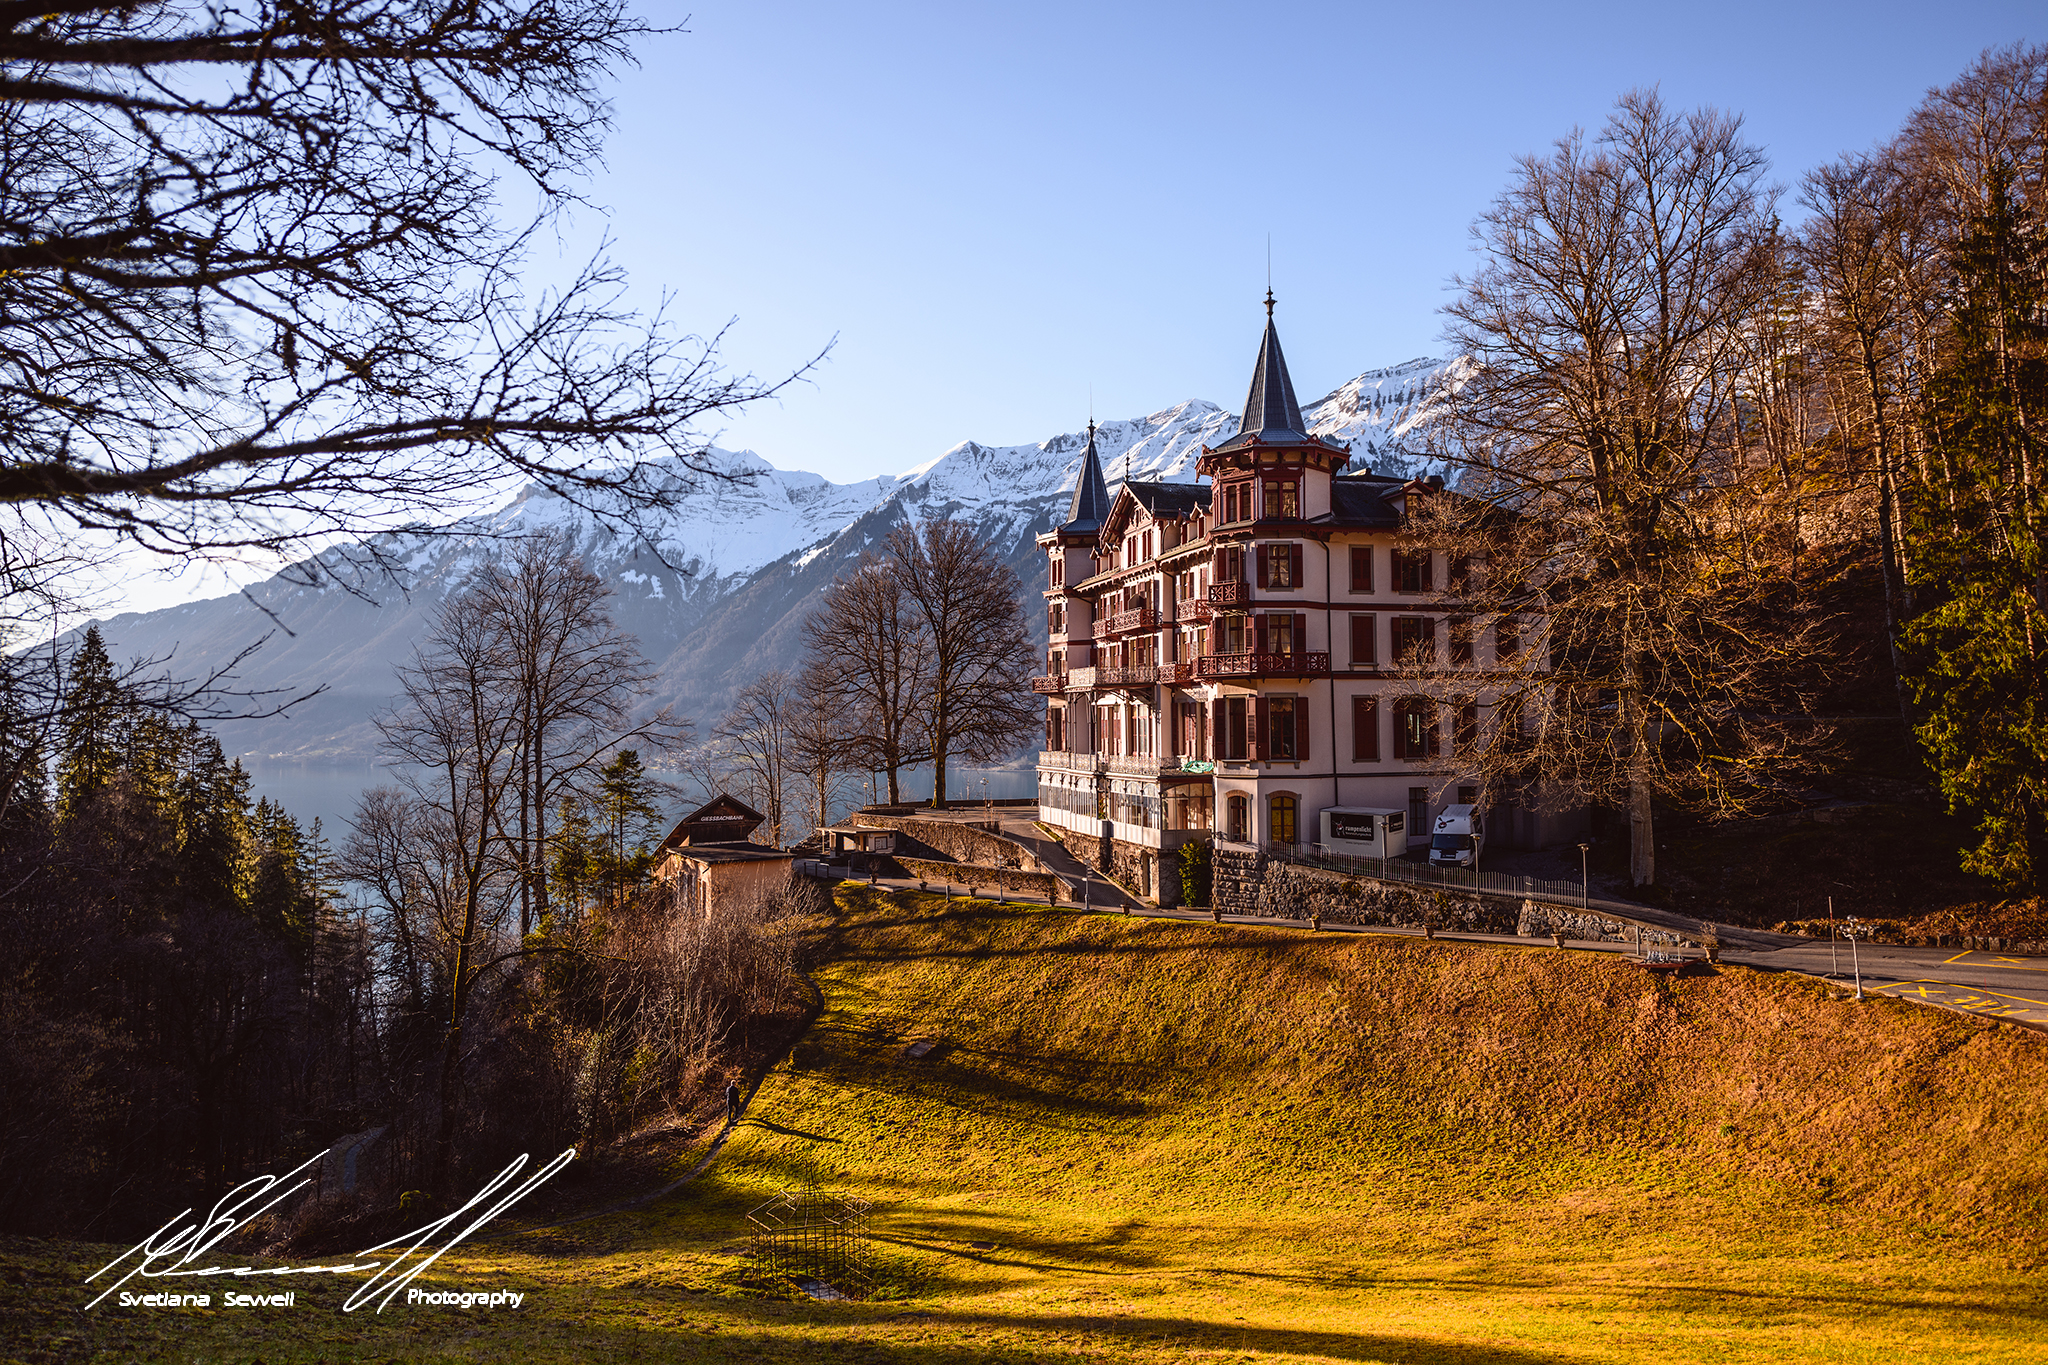 The Grandhotel Giessbach, Switzerland